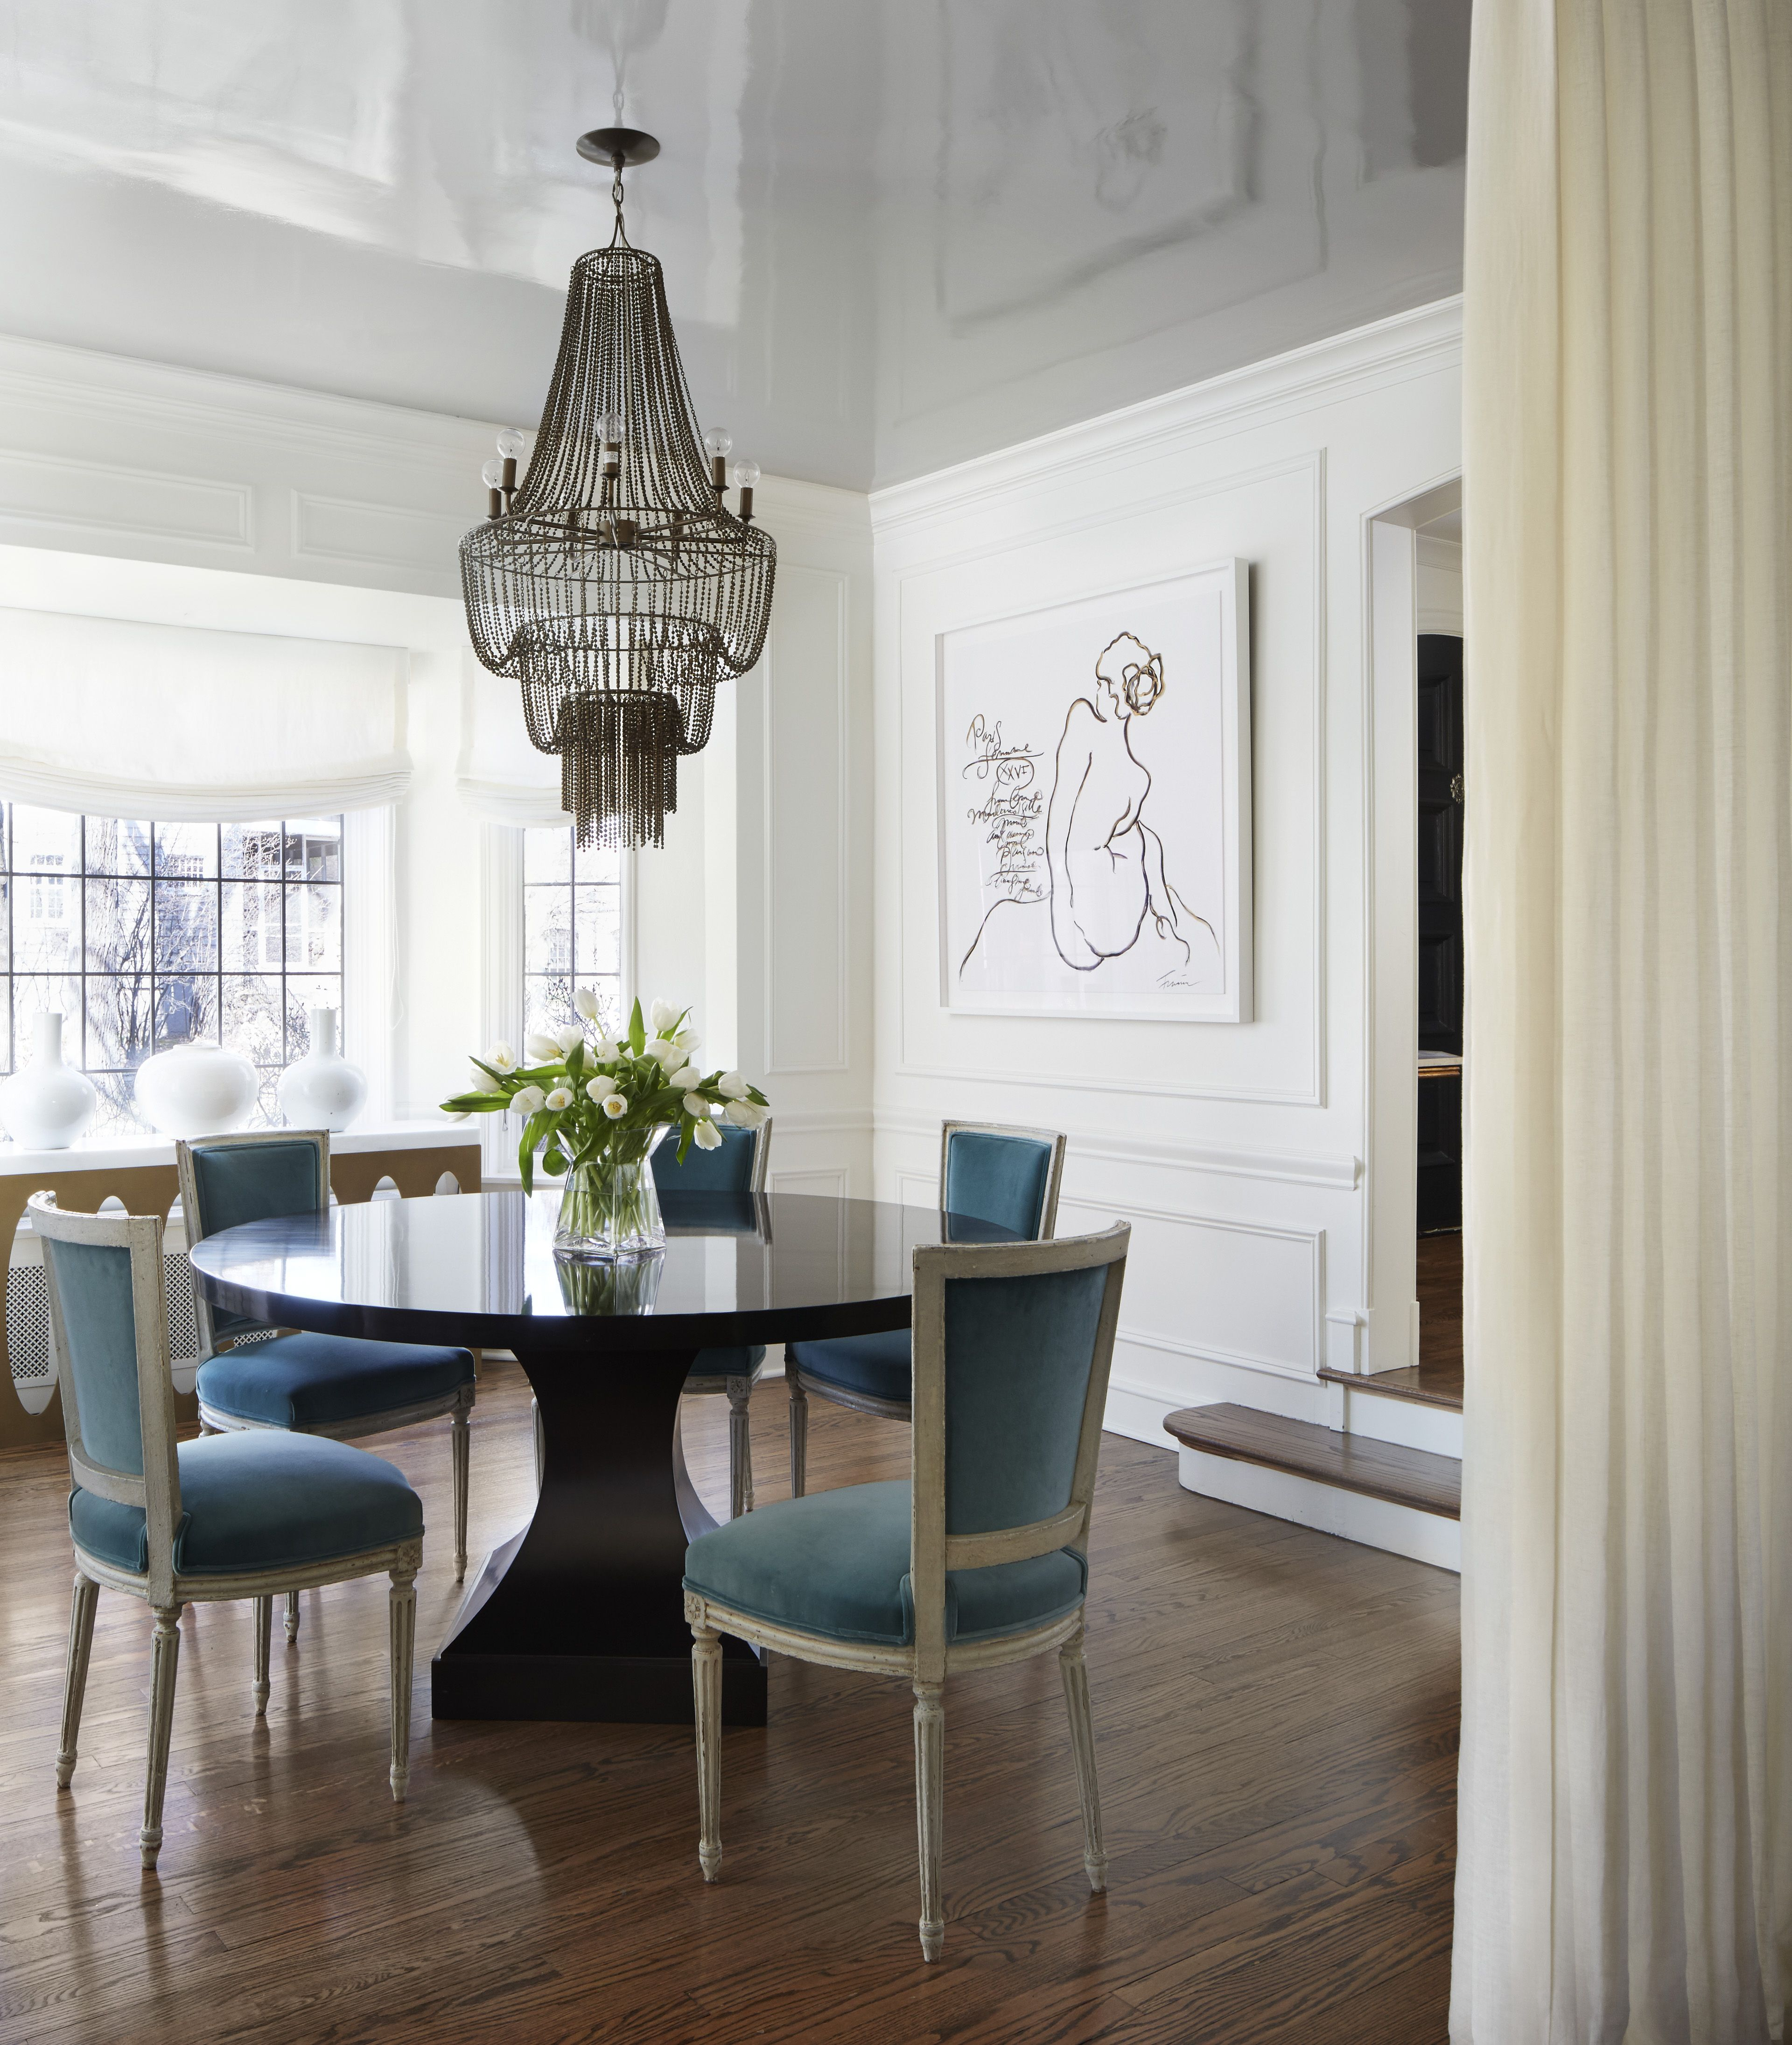 Dining Room With Lacquer Ceiling Chandelier And Custom Art